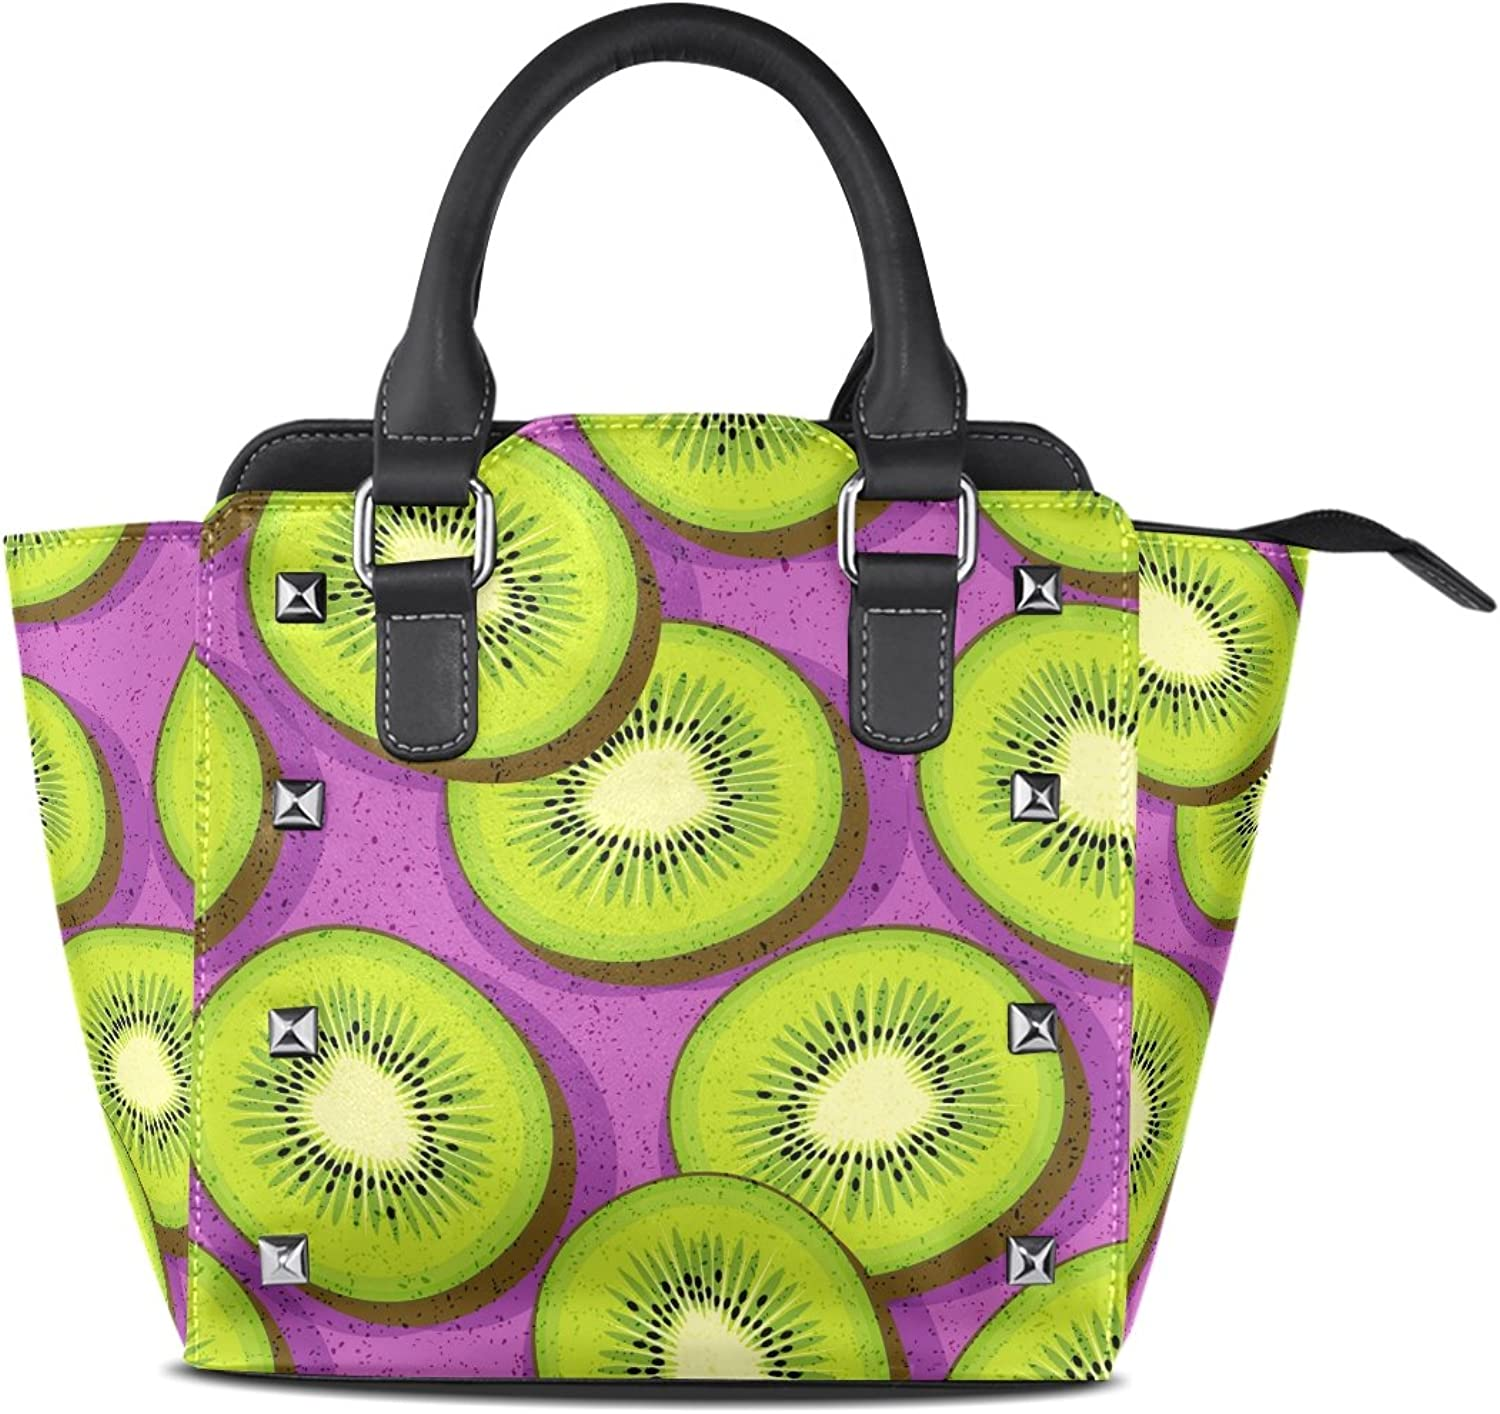 My Little Nest Women's Top Handle Satchel Handbag Kiwi Fruit Ladies PU Leather Shoulder Bag Crossbody Bag